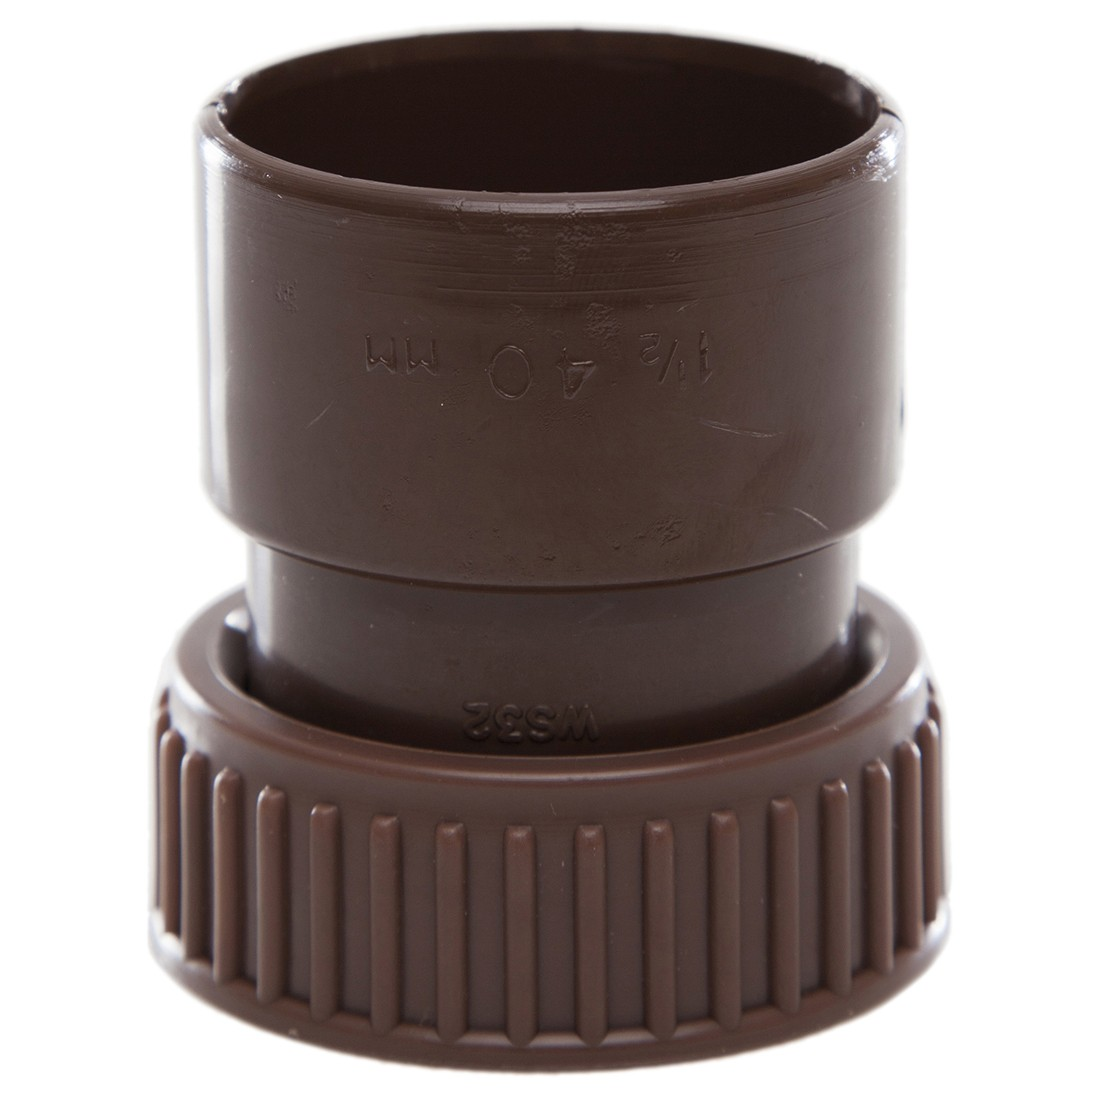 Polypipe 40mm Solvent Weld Waste Female Threaded Coupler - Brown